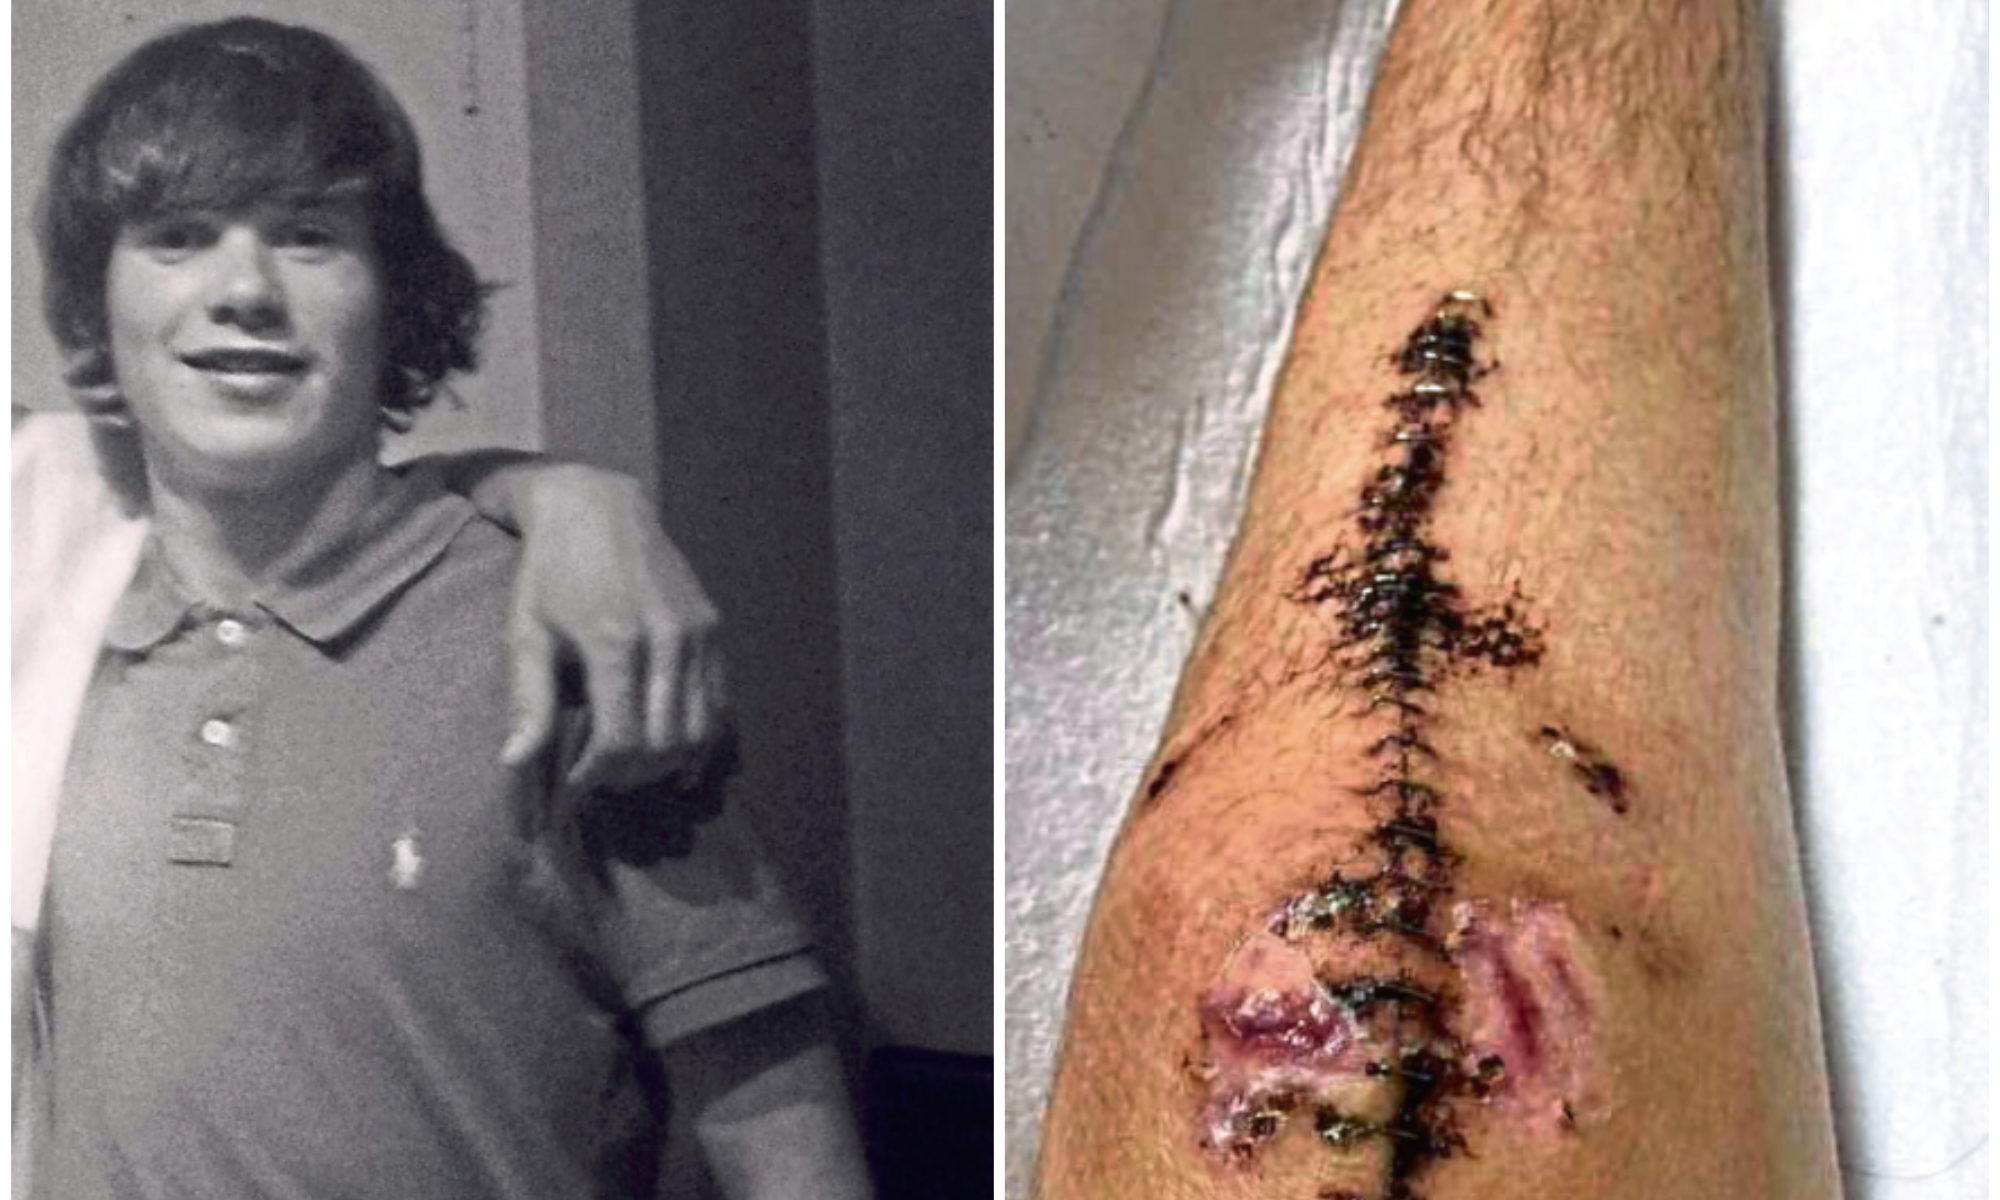 Scott McDonald and one of the injuries he sustained